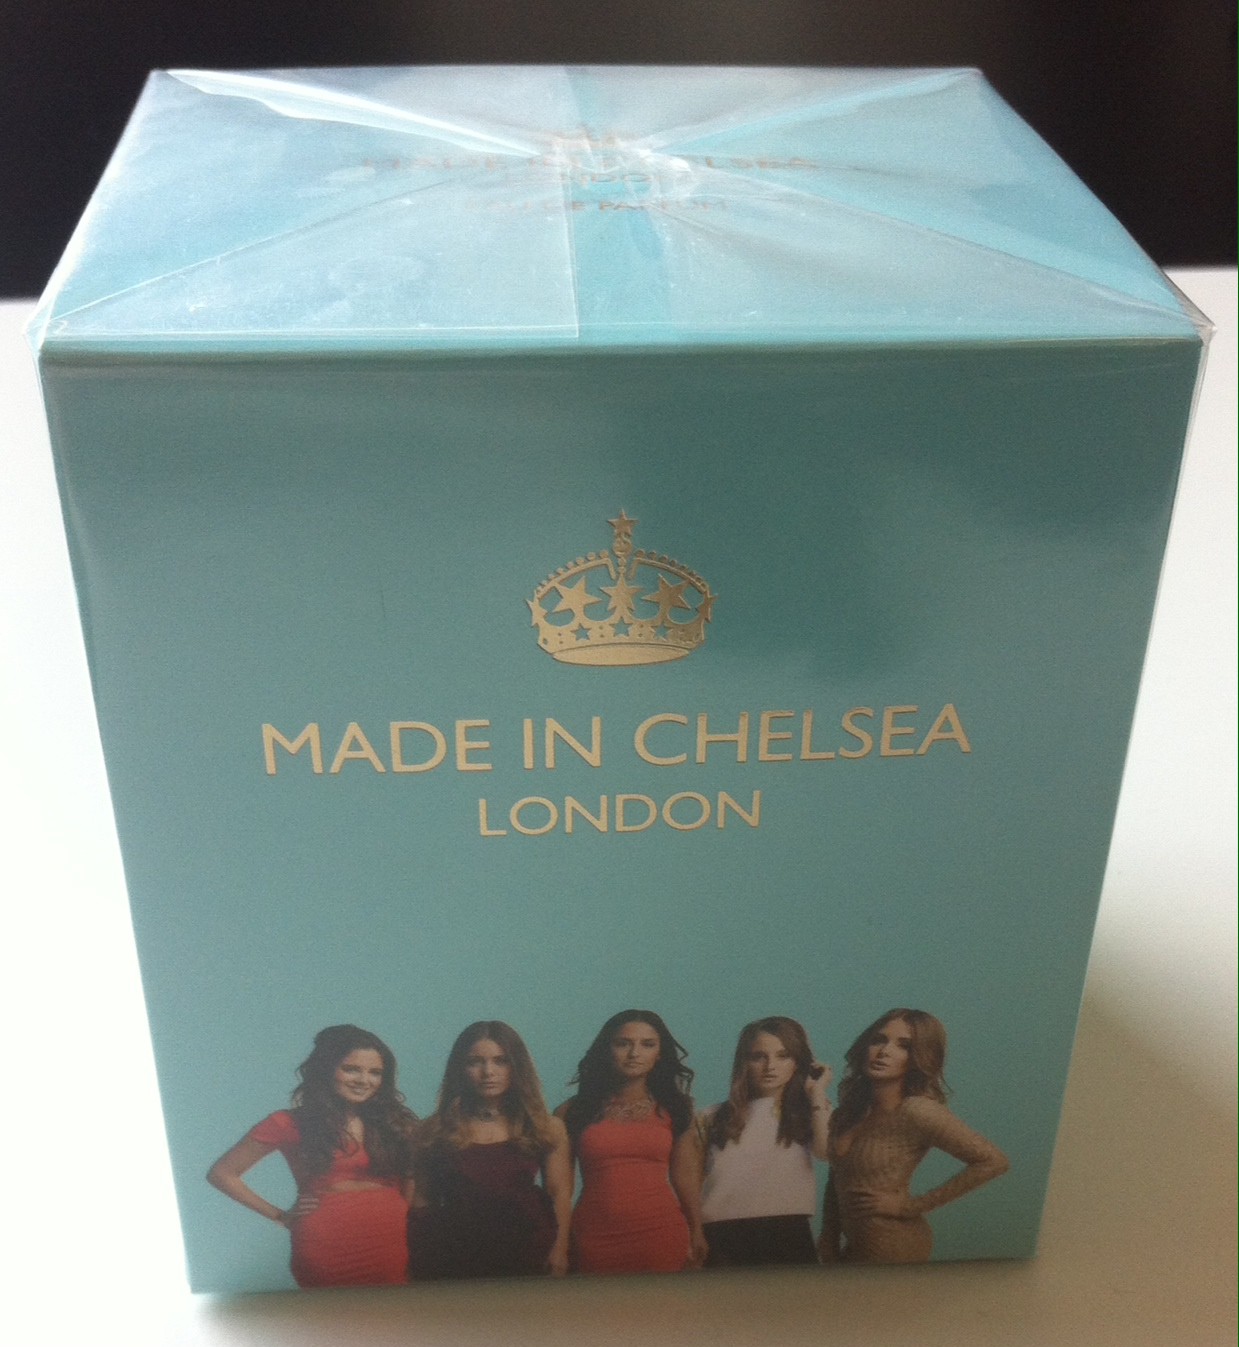 Made in Chelsea perfume